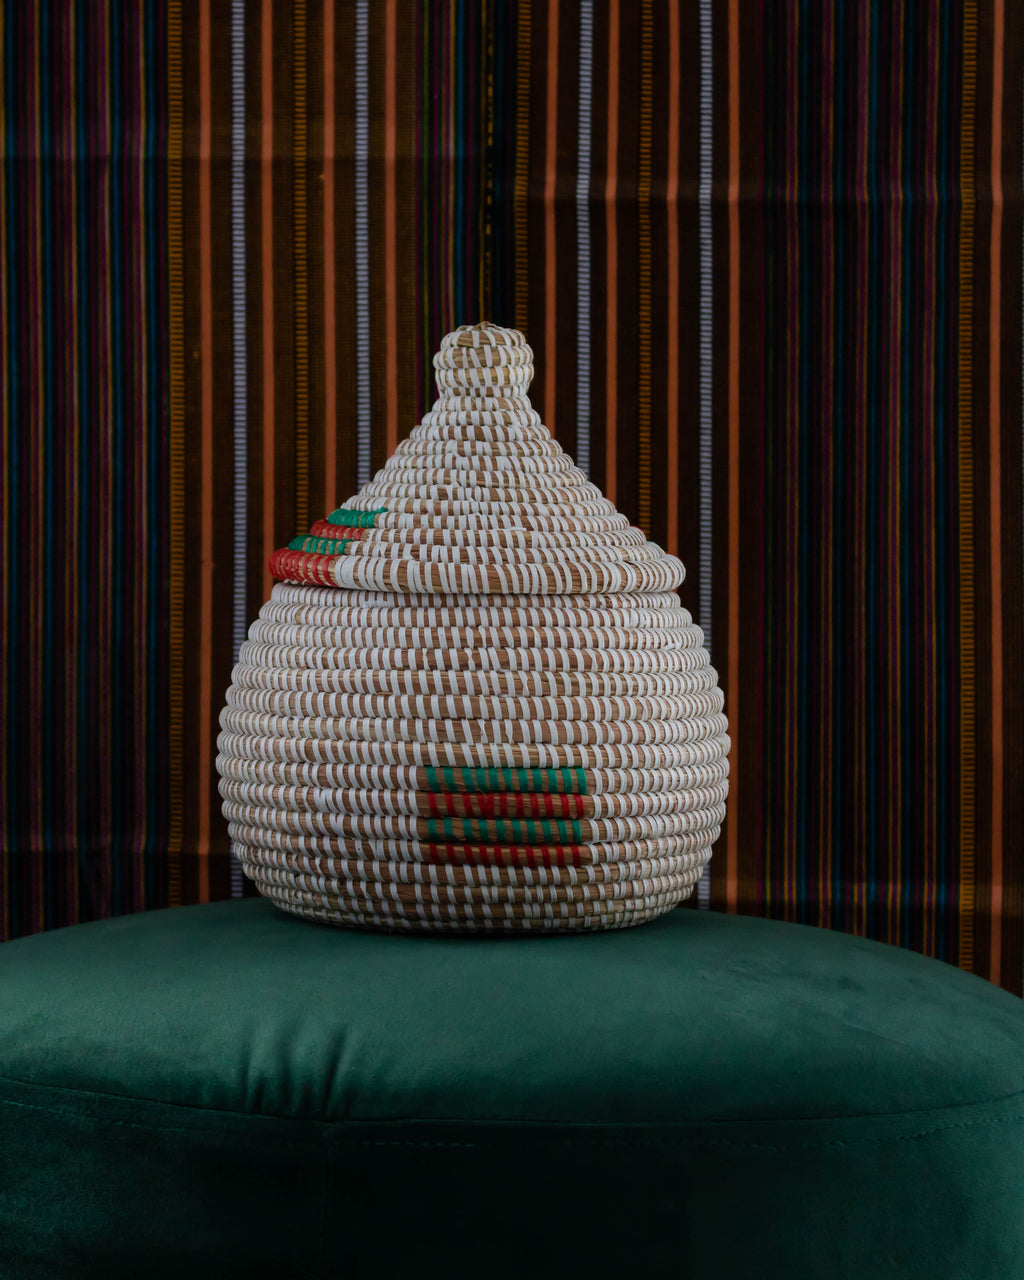 Salt basket bag, handmade colourful basket bag Sénégal, maison petite & bold baskets